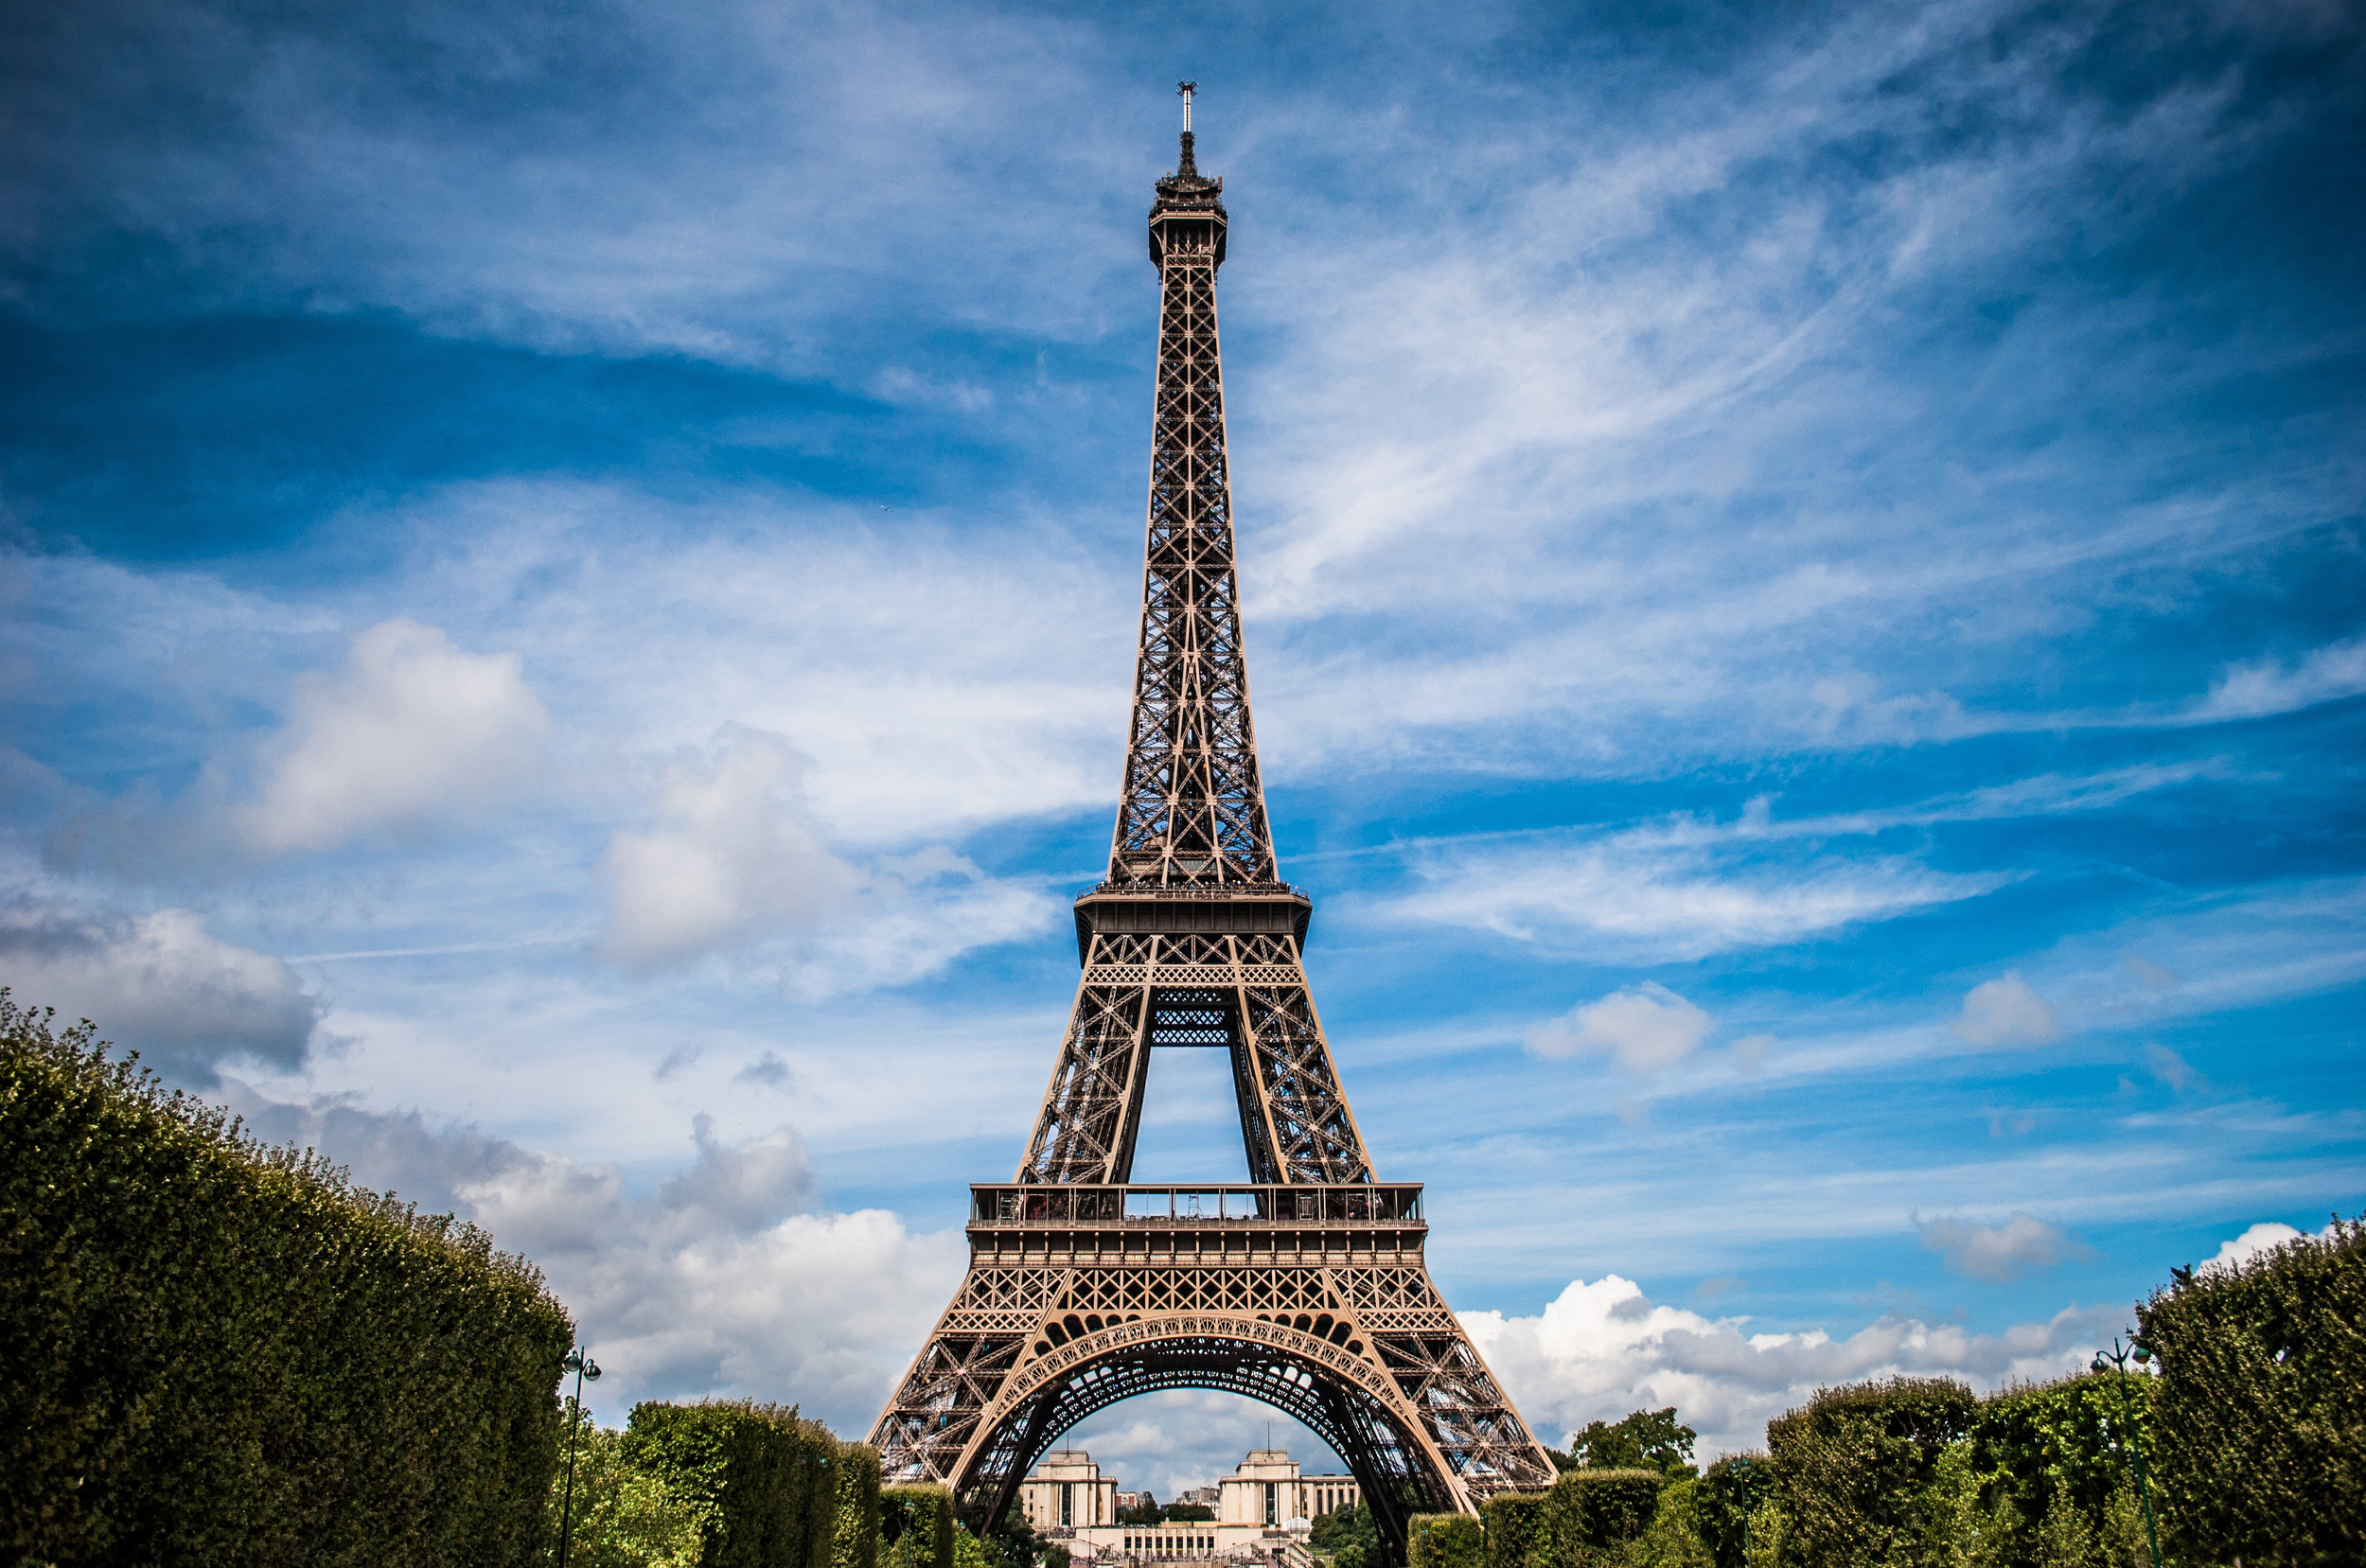 Eiffel Tower in full